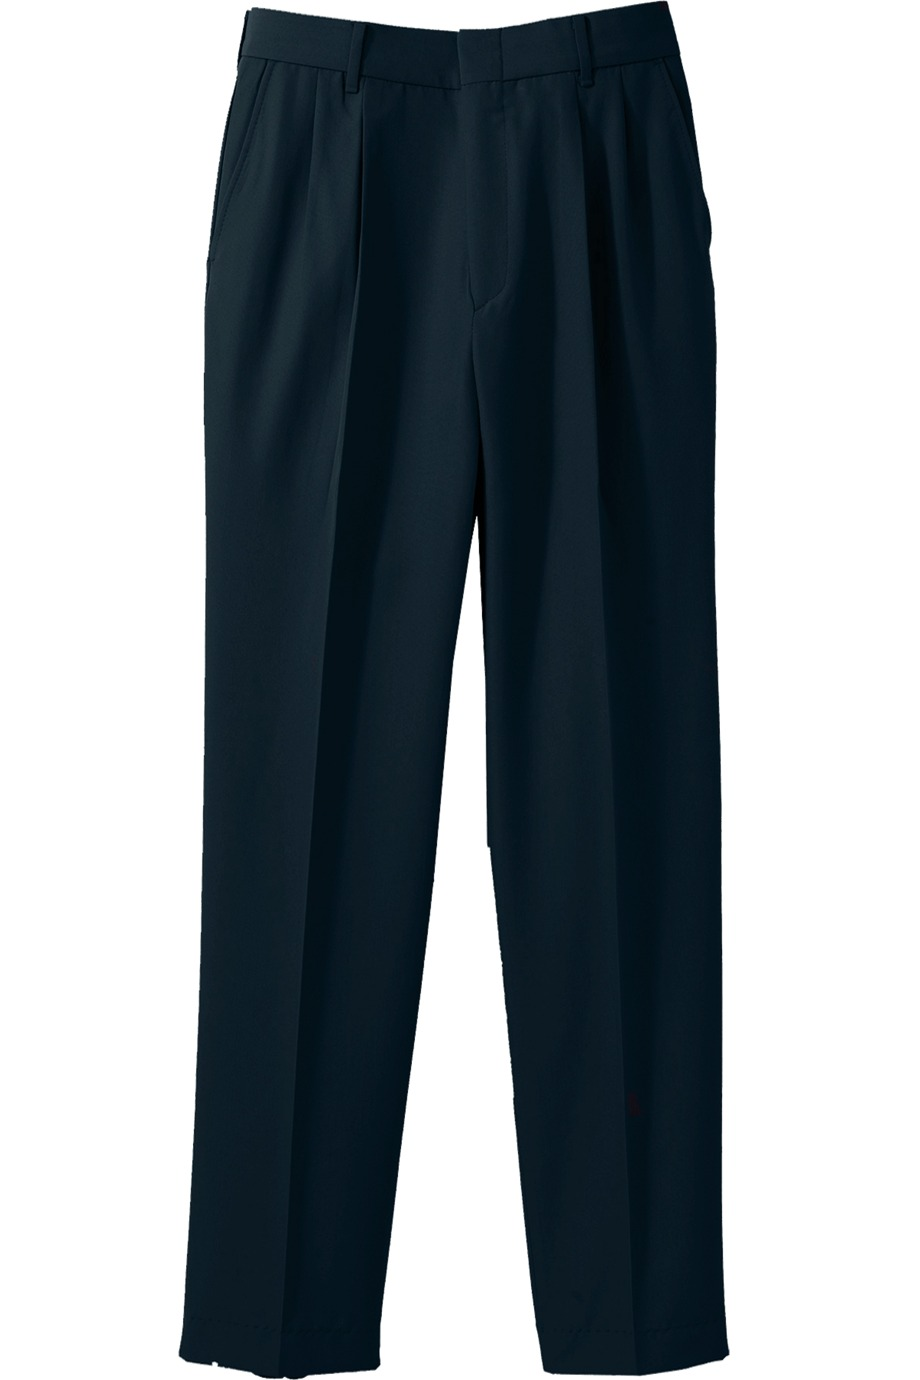 Edwards Garment 2620 - Men's Washable Wool Blend Pleated Pant